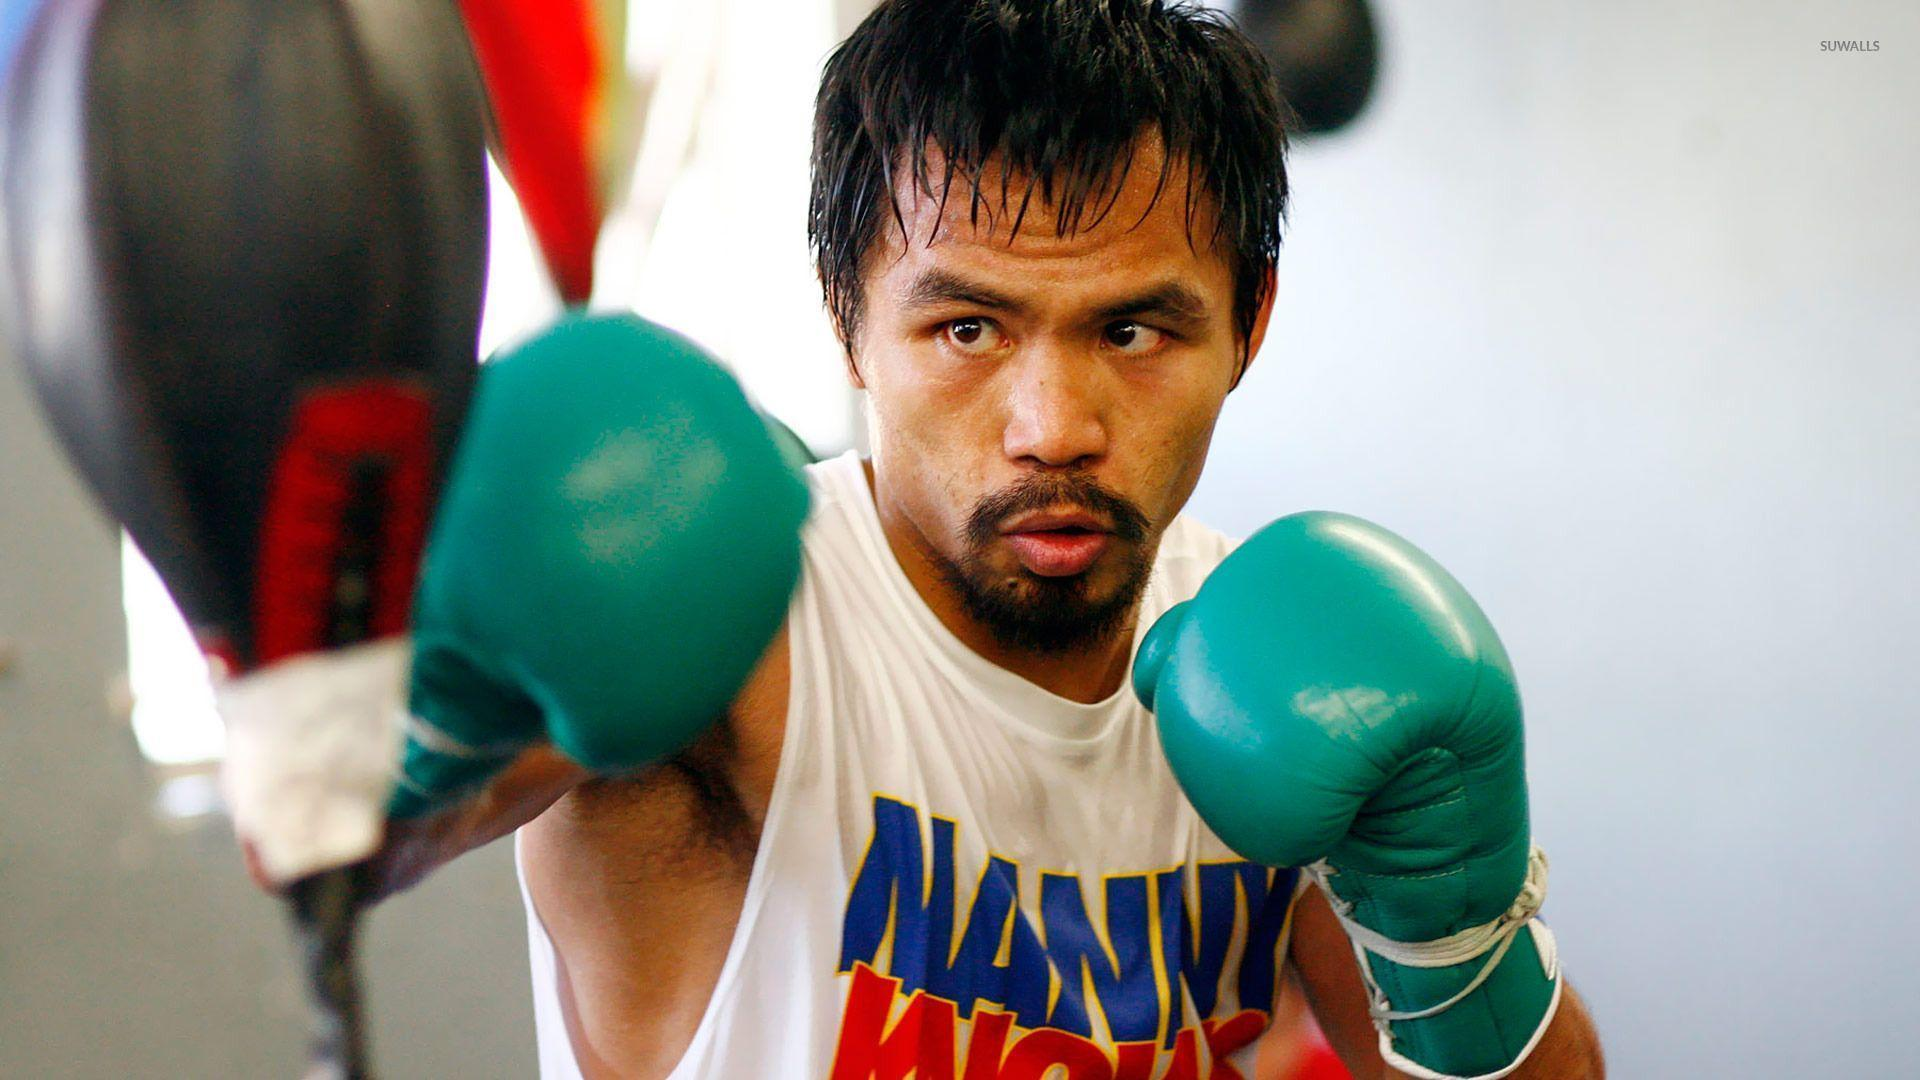 Manny Pacquiao wallpapers